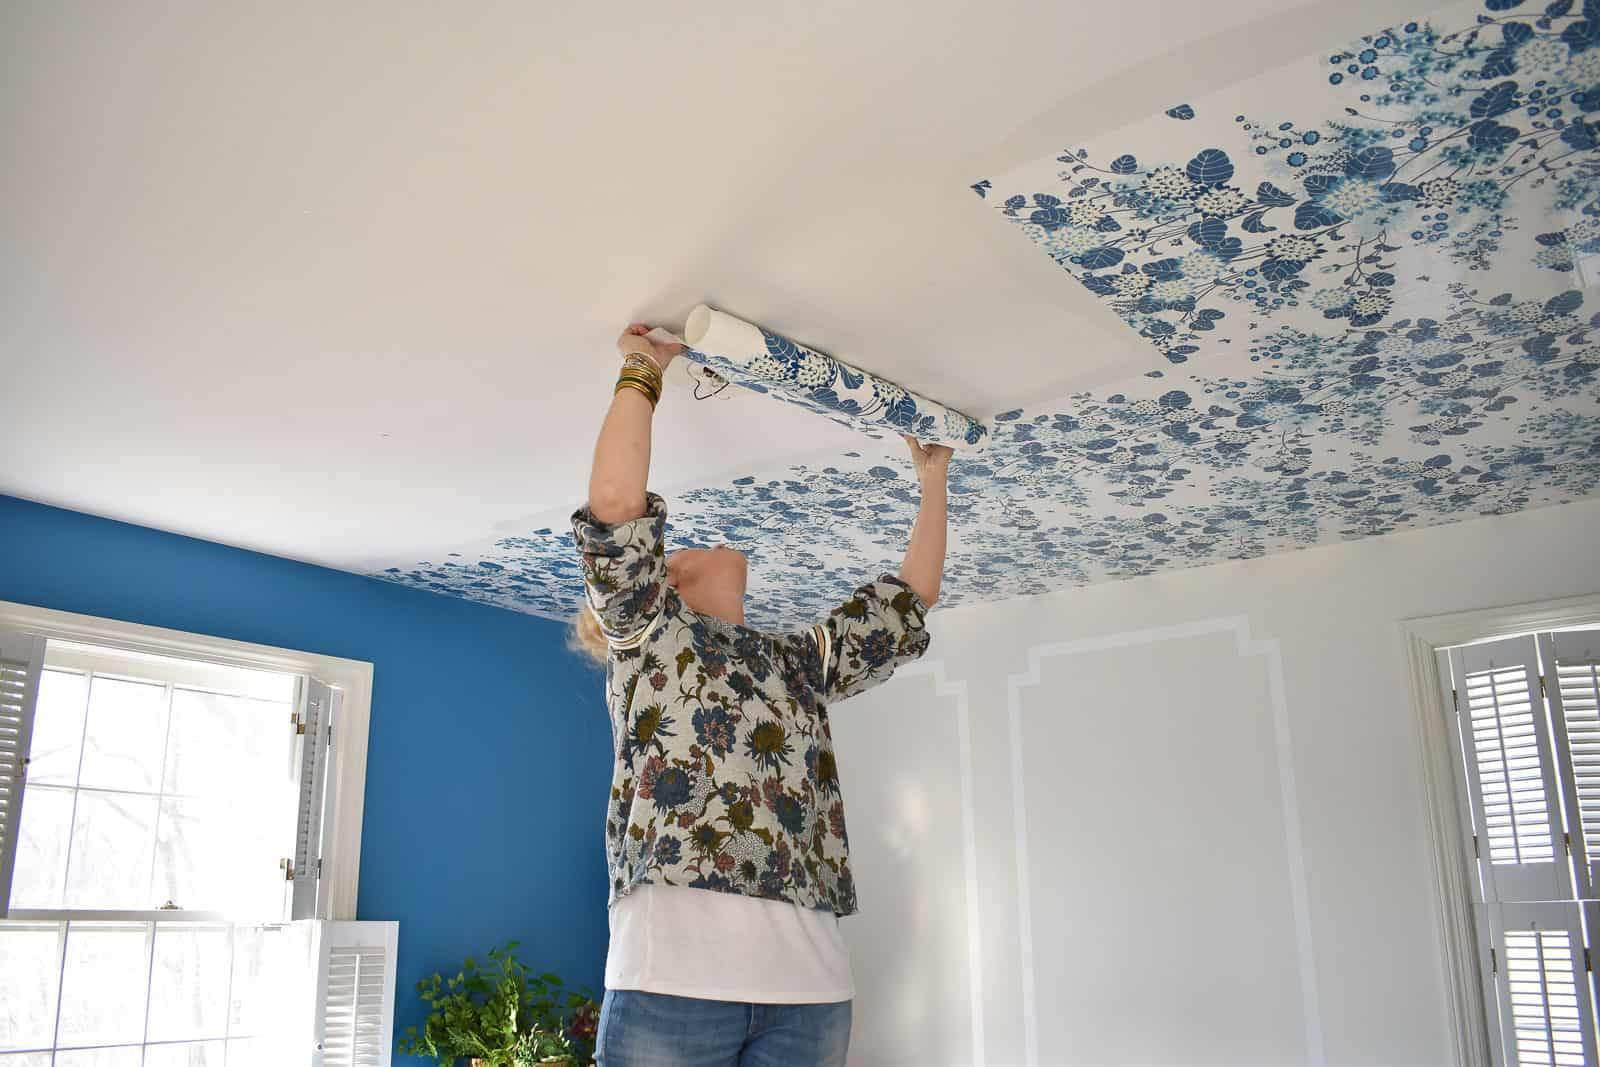 hanging wallpaper on the ceiling